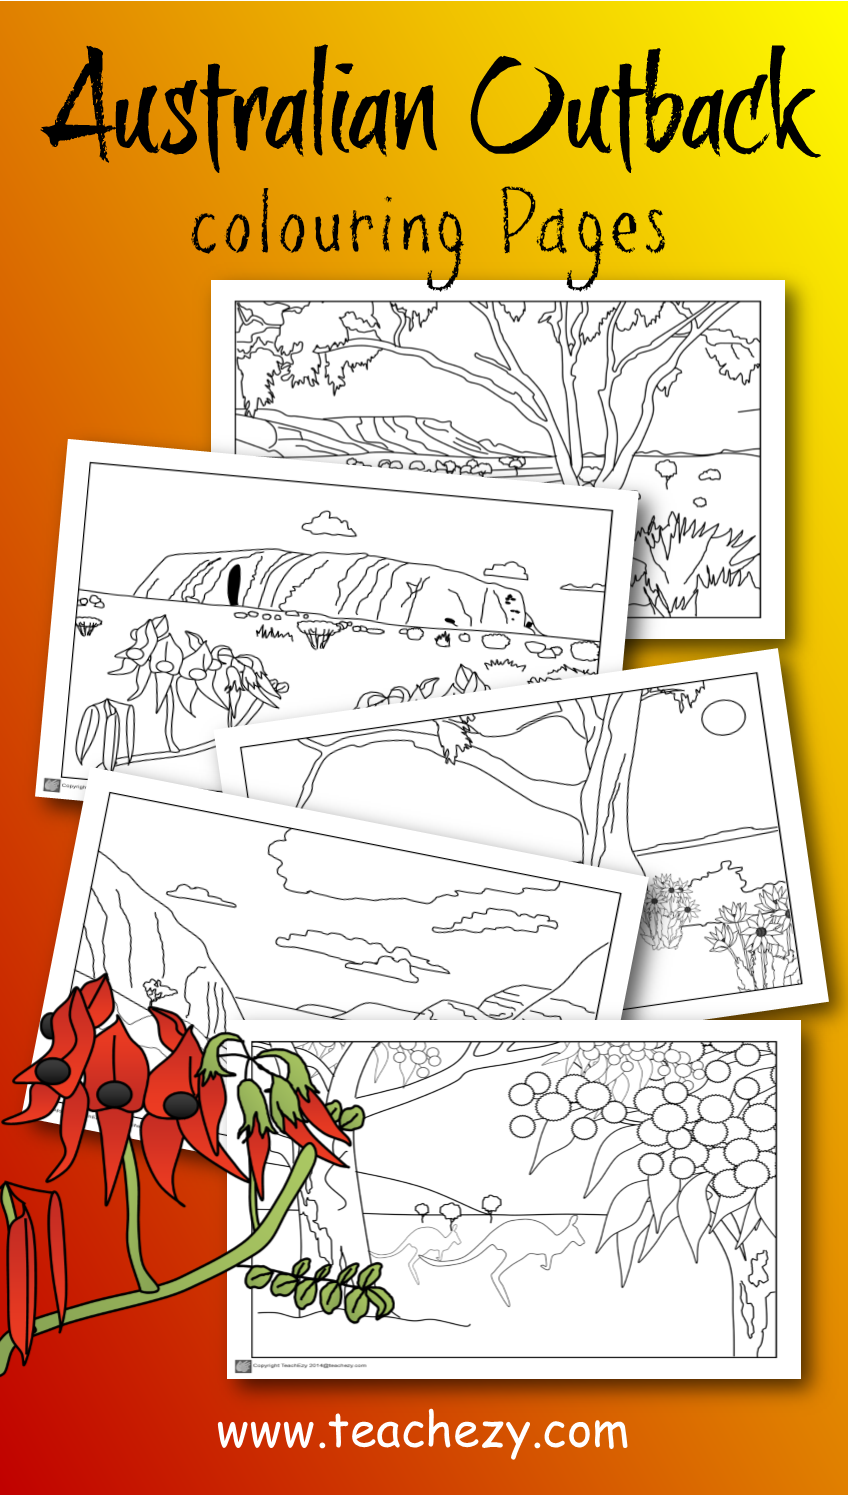 Australian Outback Colouring Pages Includes Uluru MacDonnell Ranges Flannel Flowers Sturts Desert Flower And More Teachezy